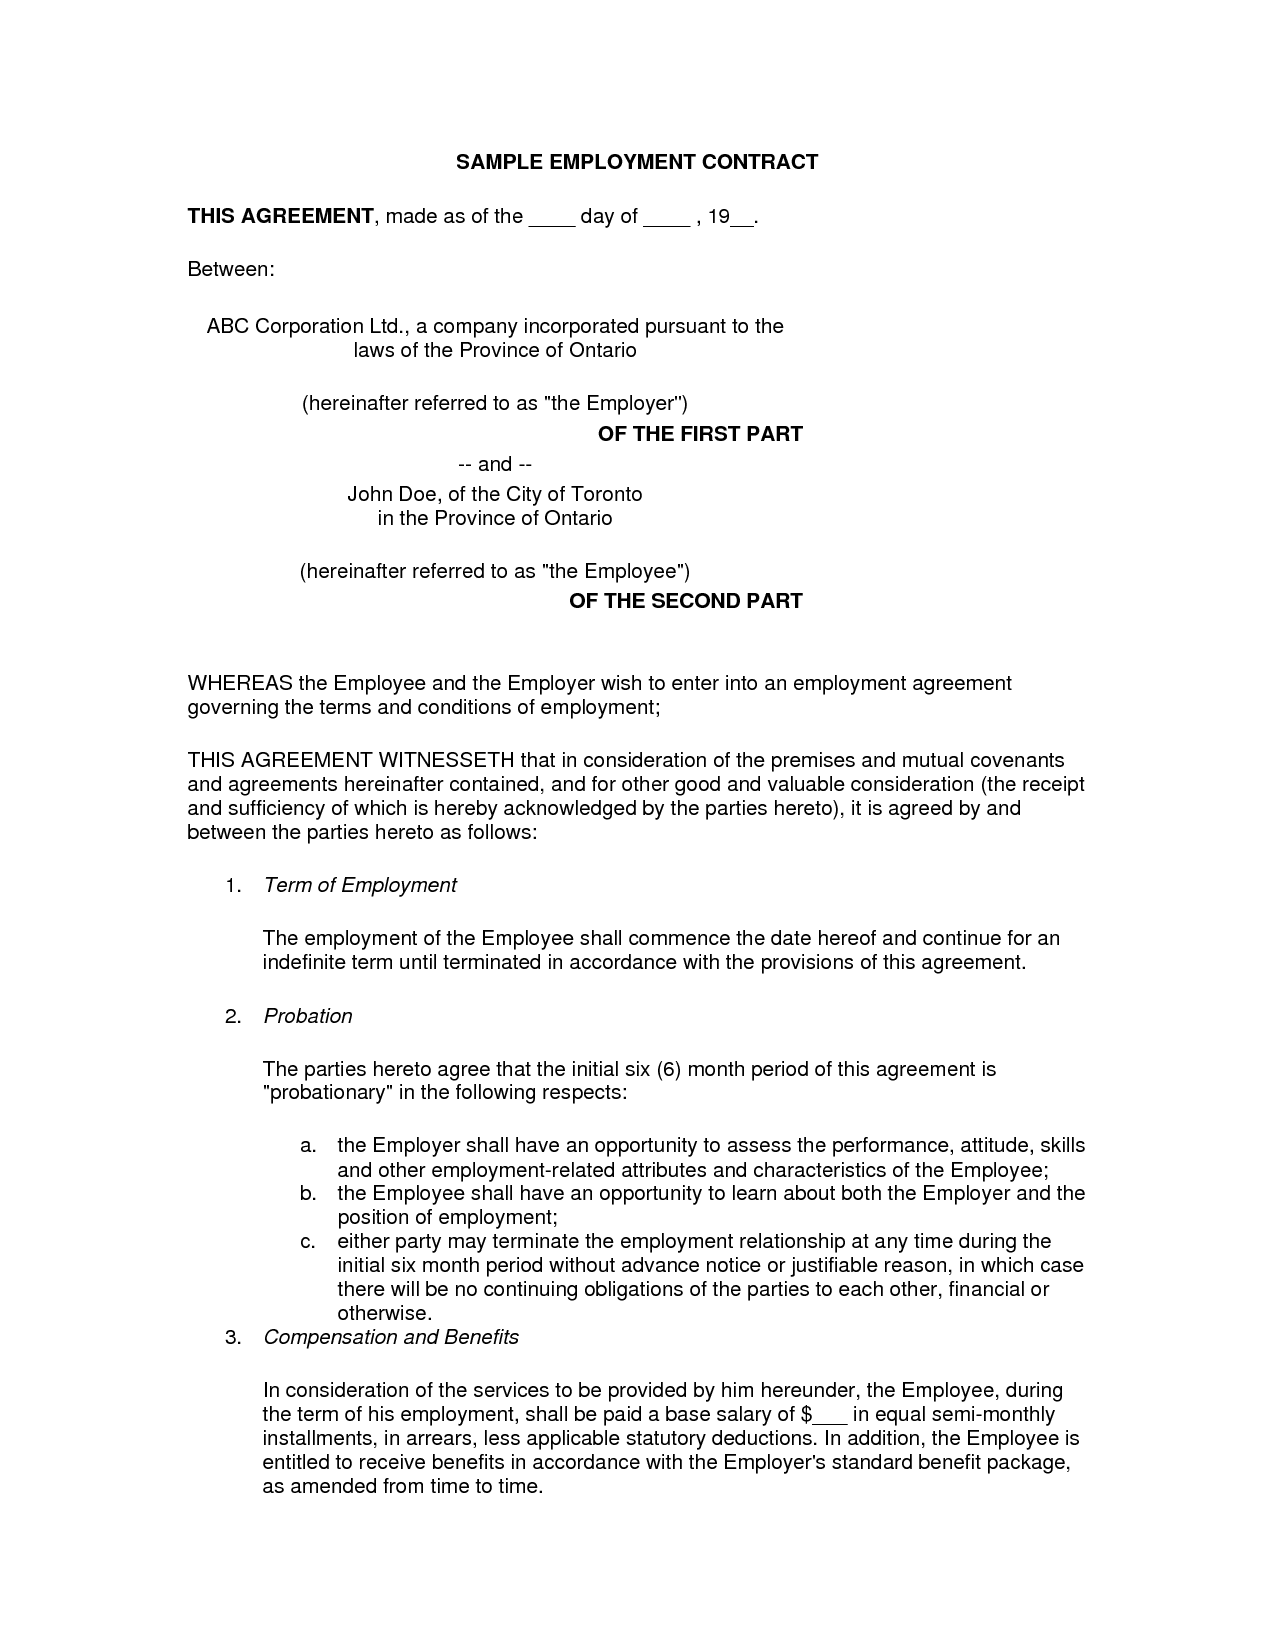 termination free employment contract software trainee cover letter